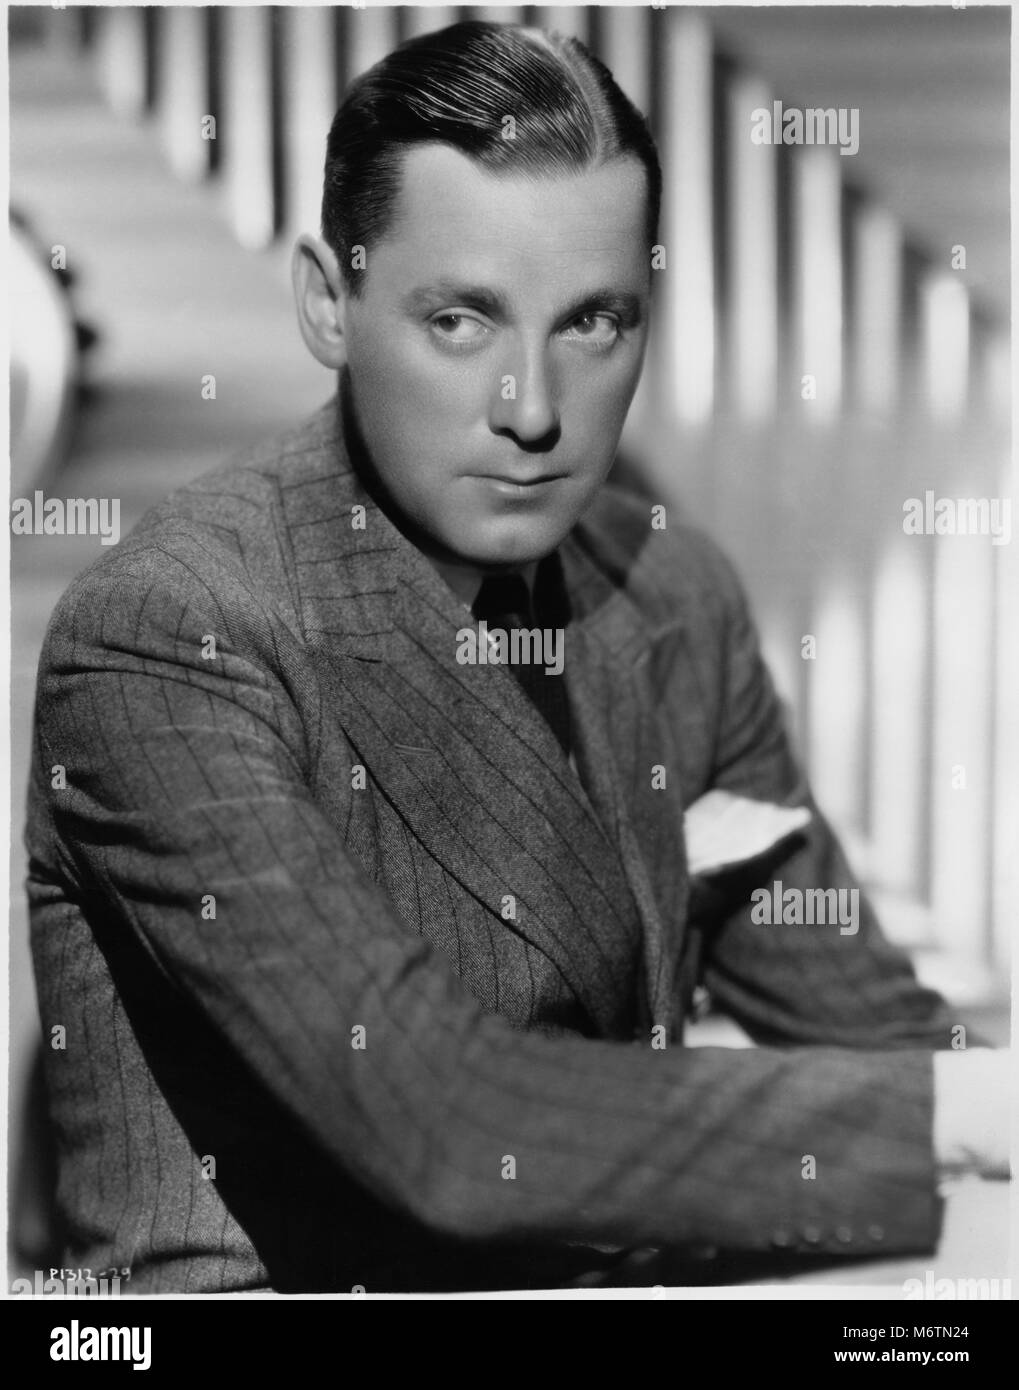 "Herbert Marshall, Publicity Portrait for the Film, ""Trouble in Paradise"", Paramount Pictures, 1932 Stock Photo"